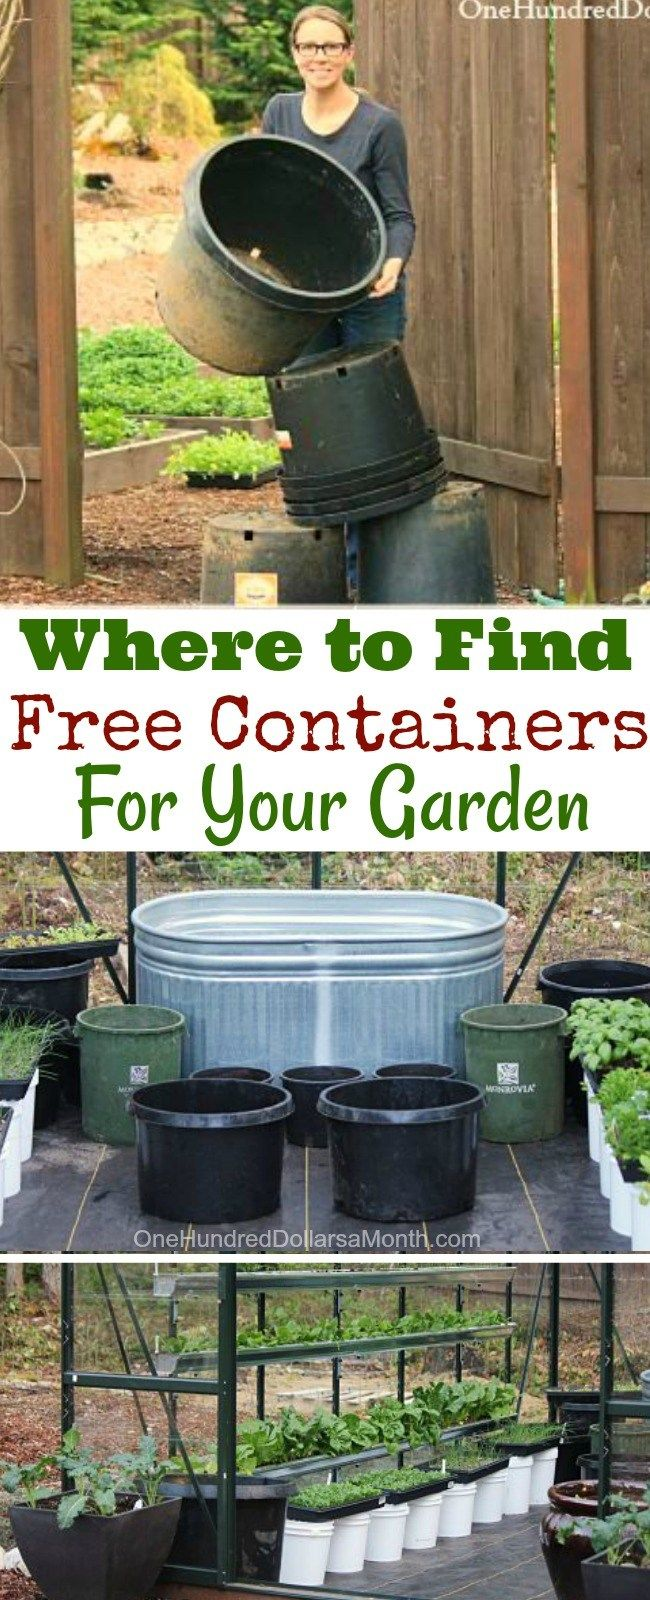 How To Find Free Containers For Your Garden One Hundred Dollars A Month Container Gardening Vegetables Garden Containers Recycled Garden